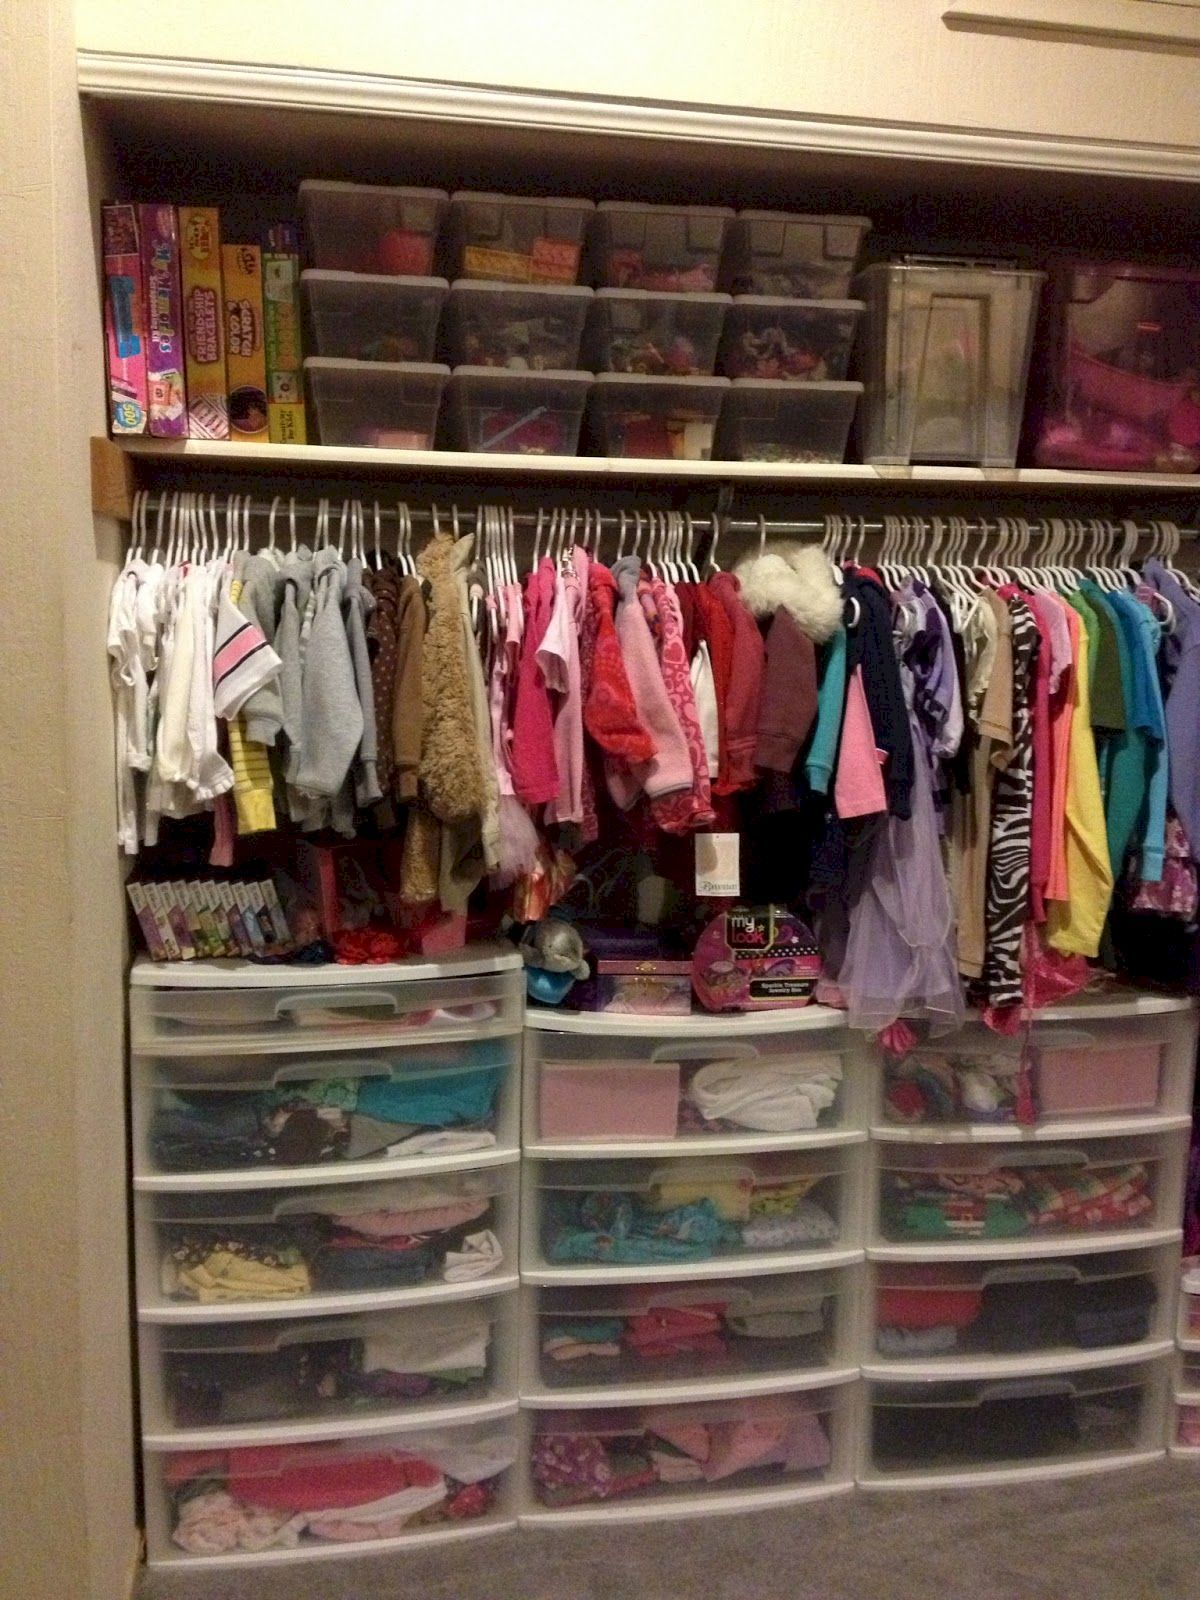 Choice Your Best Closet Storage Ideas Inside Your Room images